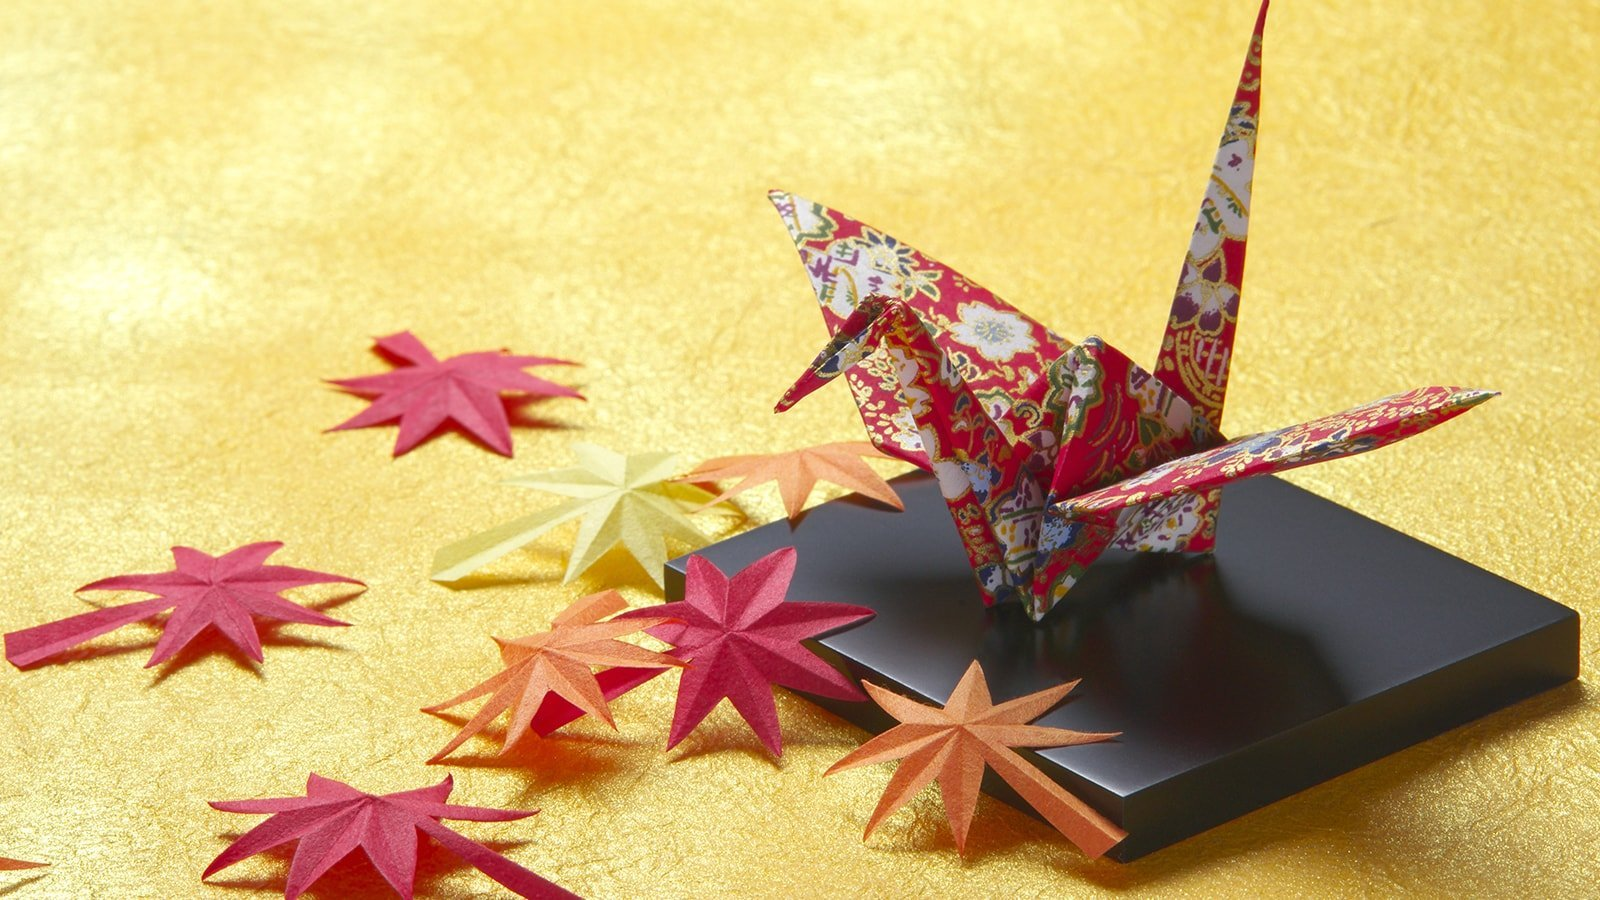 Origami Crane Easy Step By Step - All About Craft | 900x1600